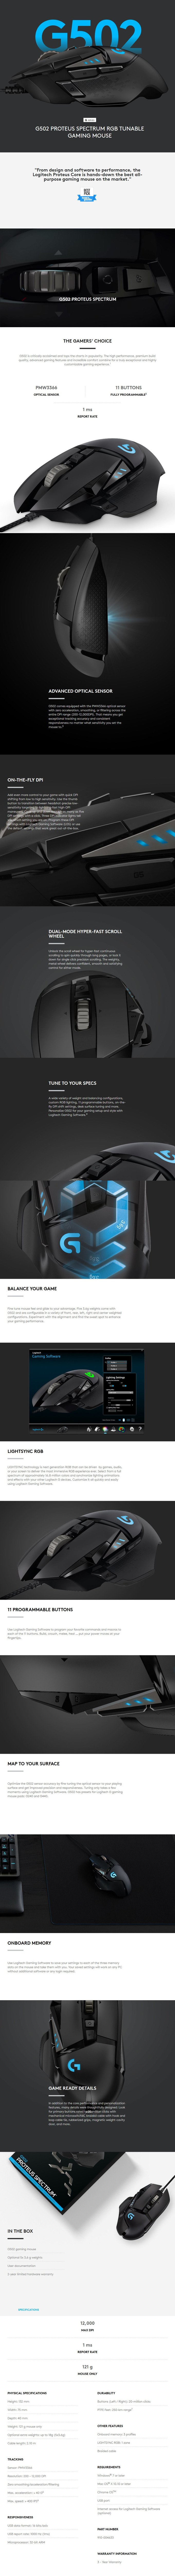 Logitech G502 Proteus Spectrum Tunable Rgb Gaming Mouse 910 004633